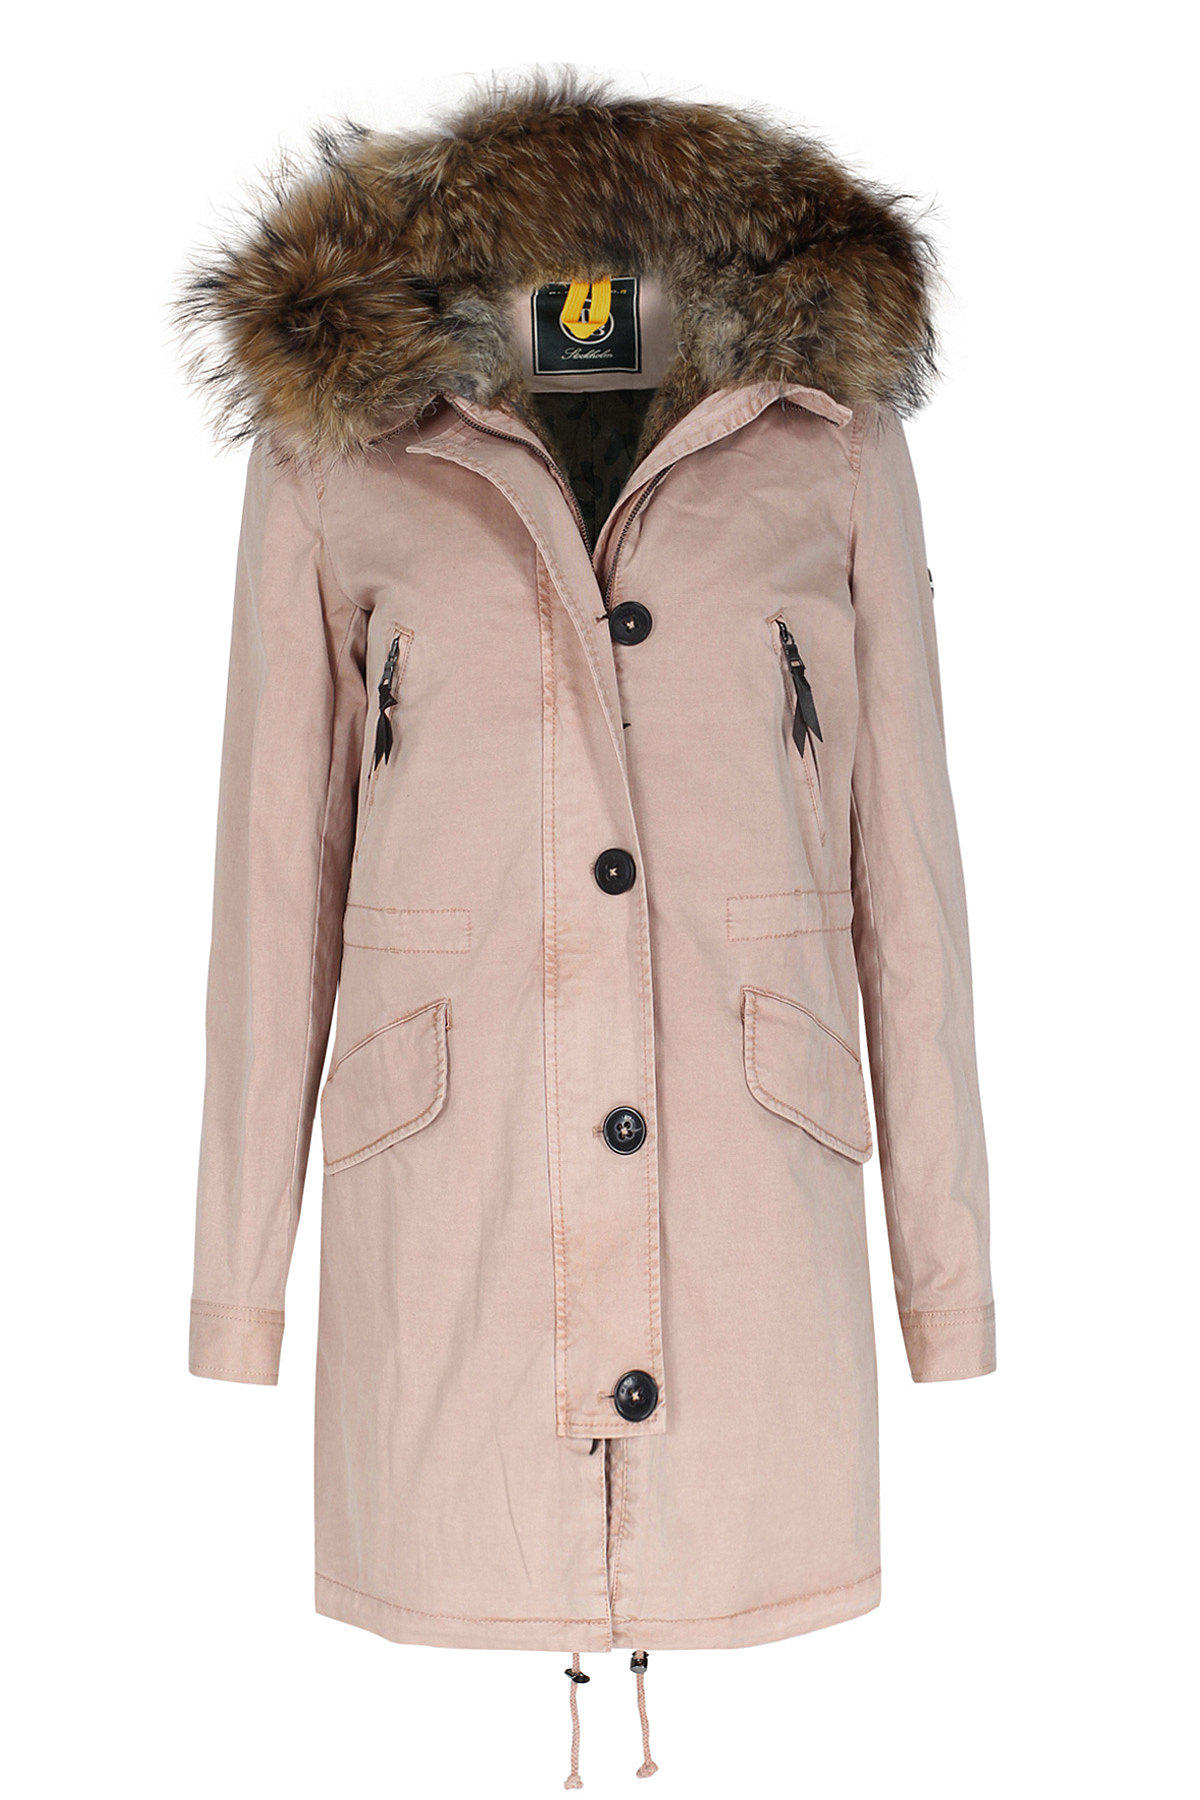 Blonde No. 8 Parka Aspen rose